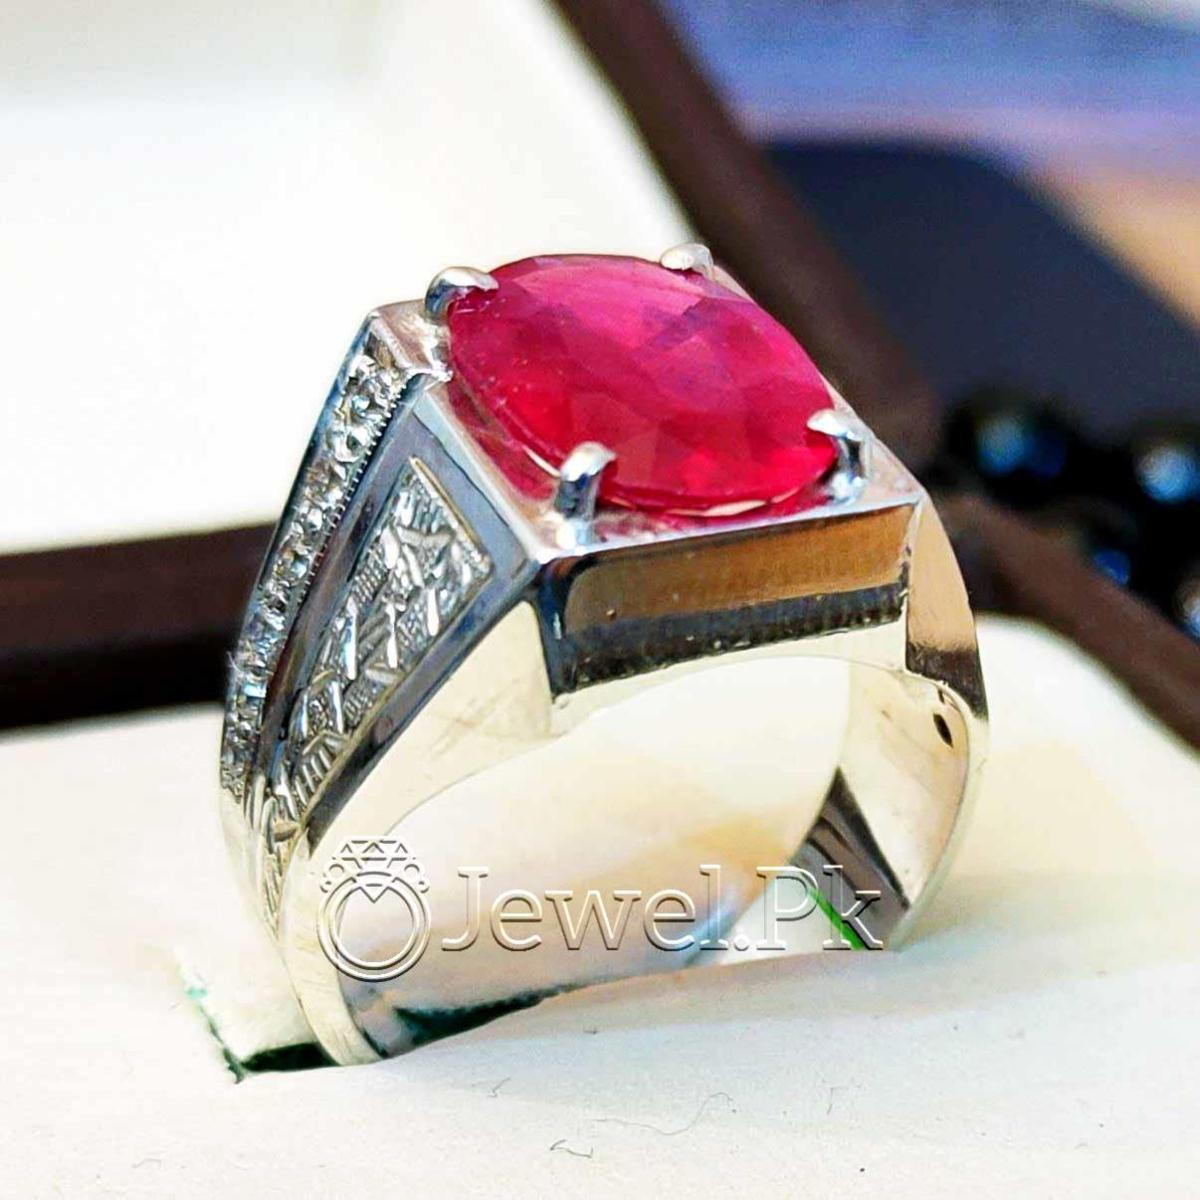 Natural Ruby Yaqoot Ring 925 Silver Handmade 3 natural gemstones pakistan + 925 silver jewelry online